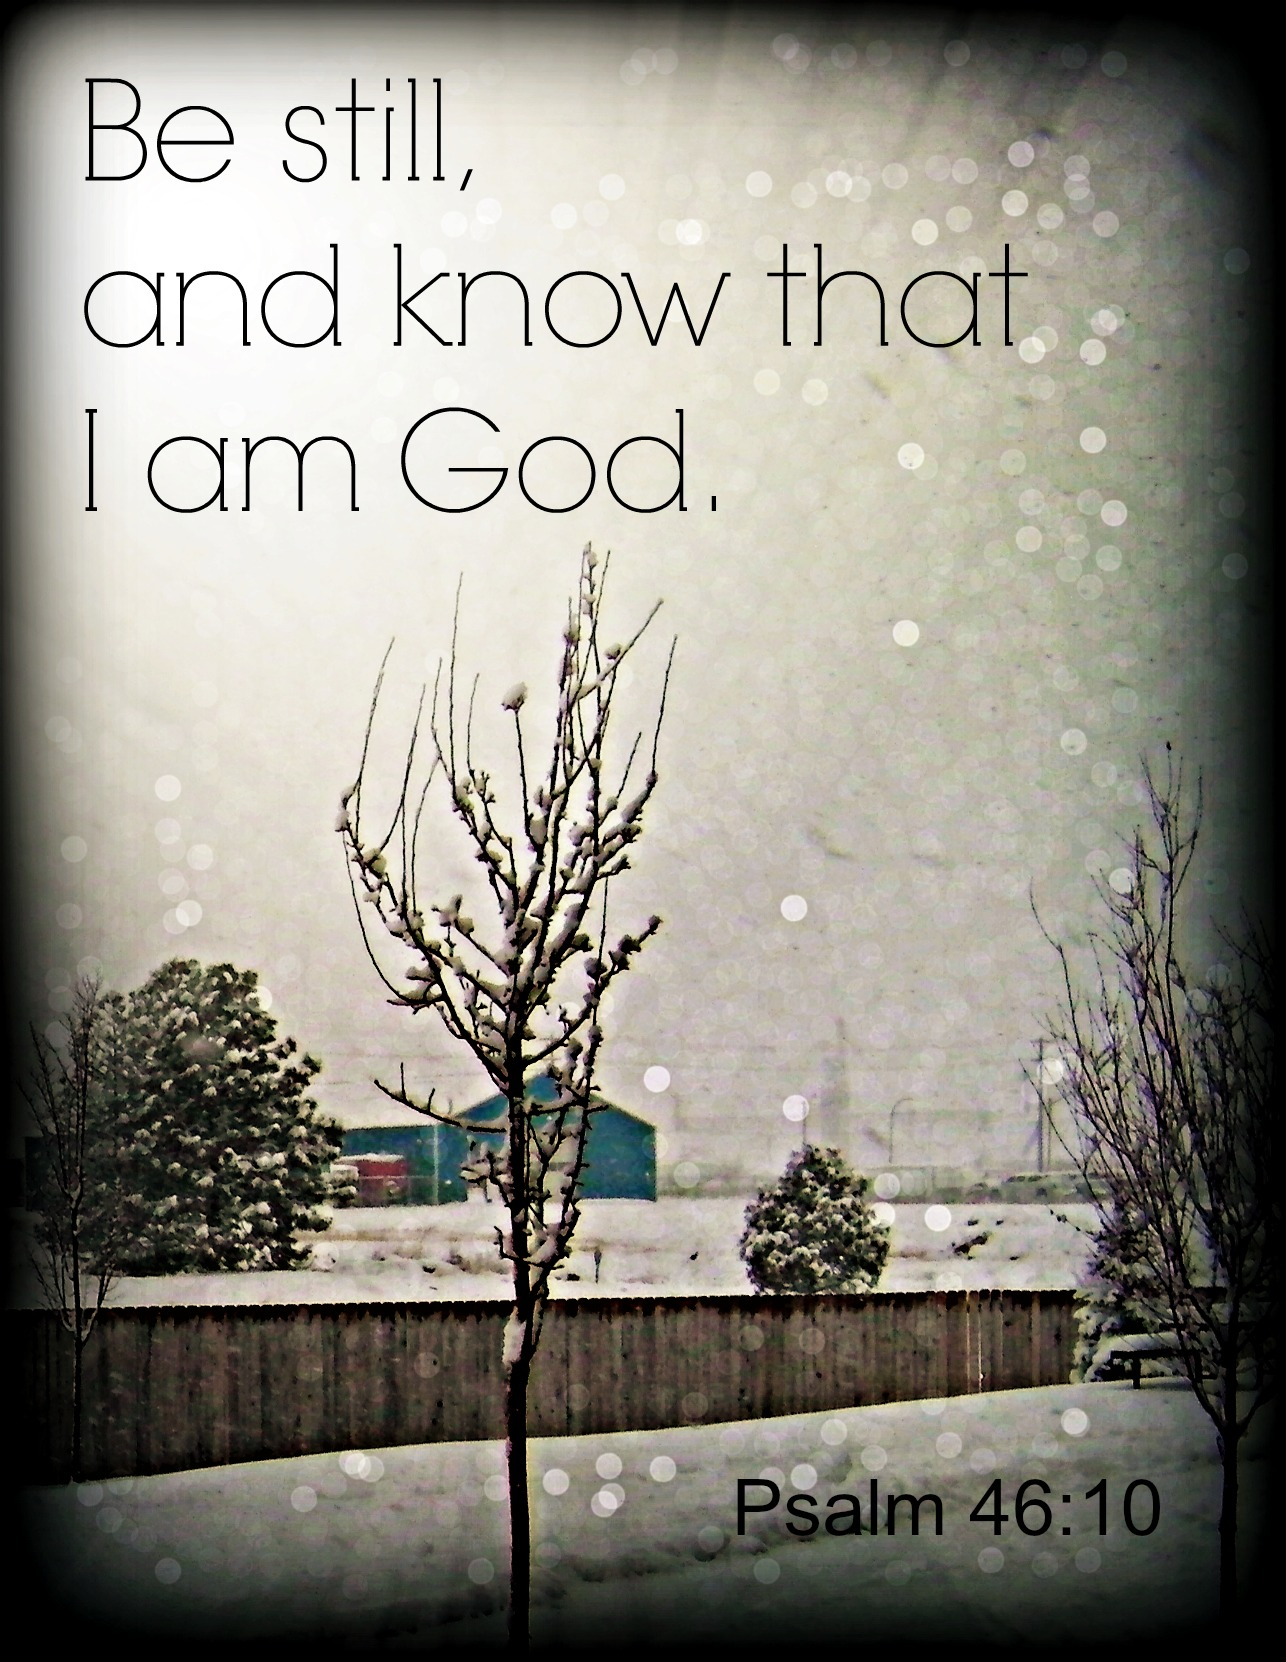 Be still and know that I am God.